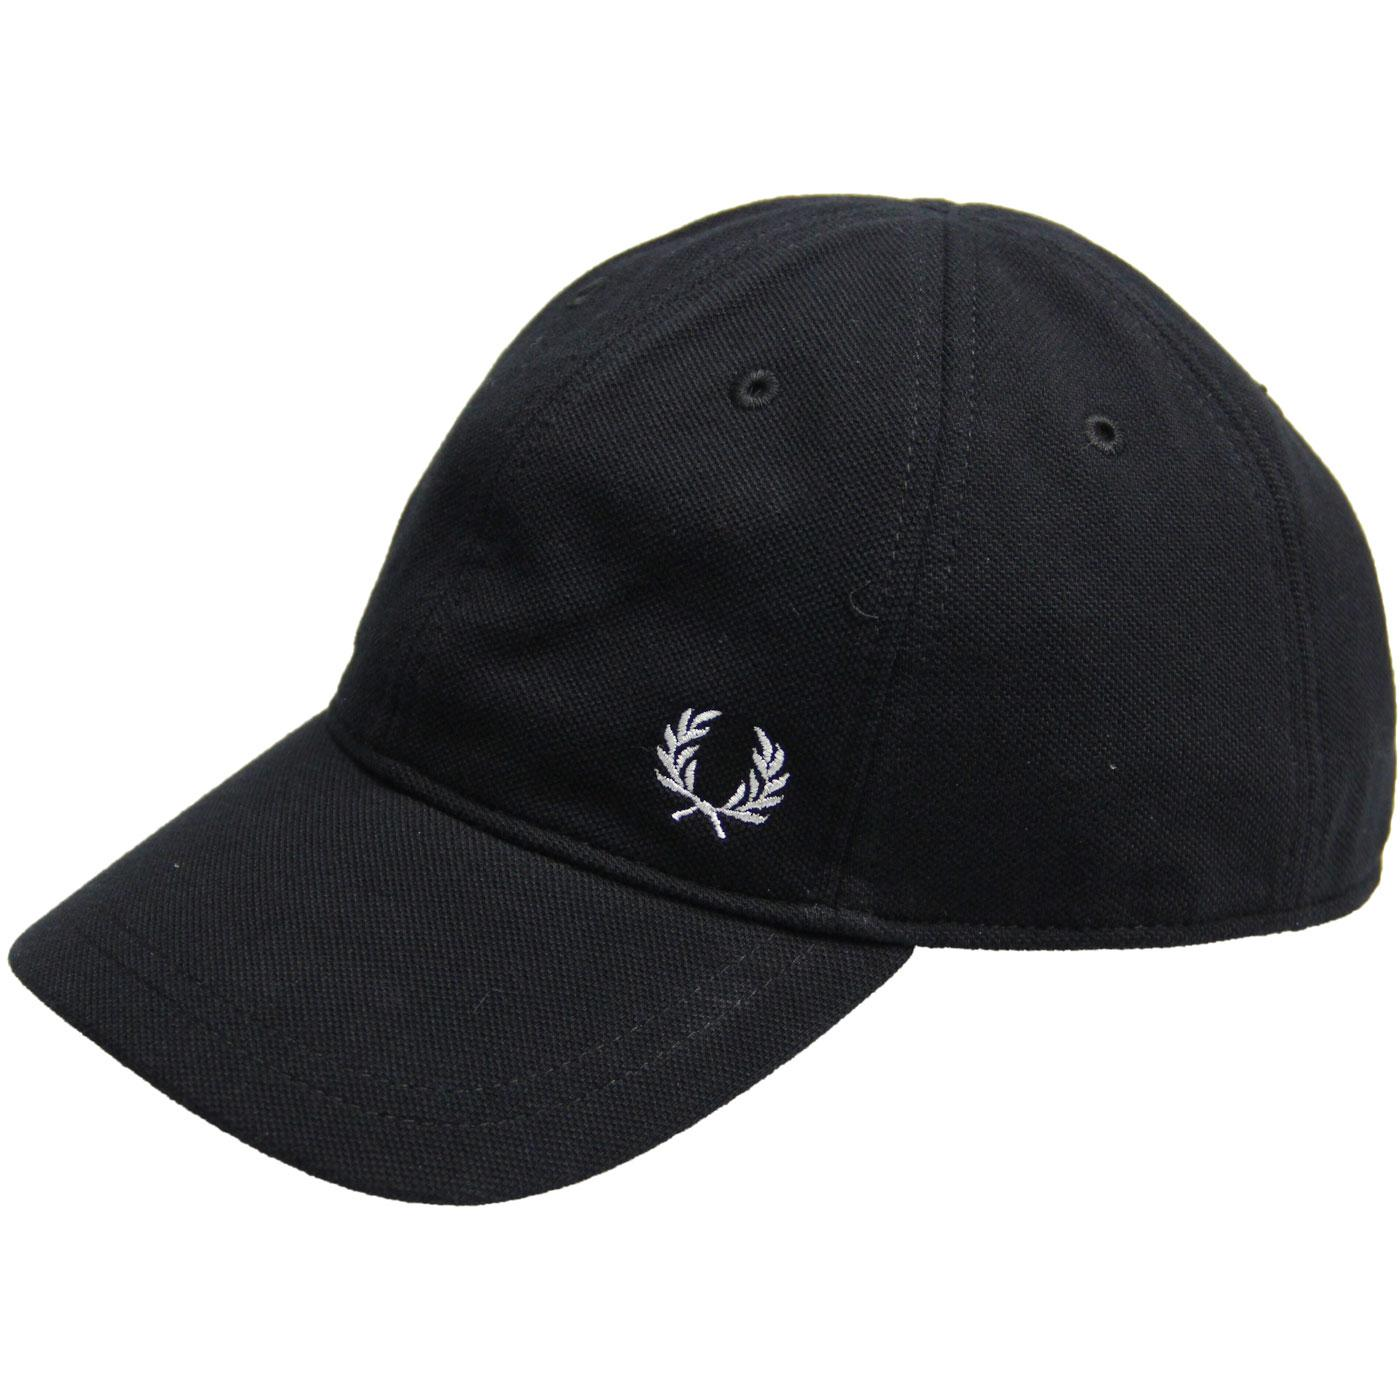 FRED PERRY Men's Retro Pique Baseball Cap (Black)